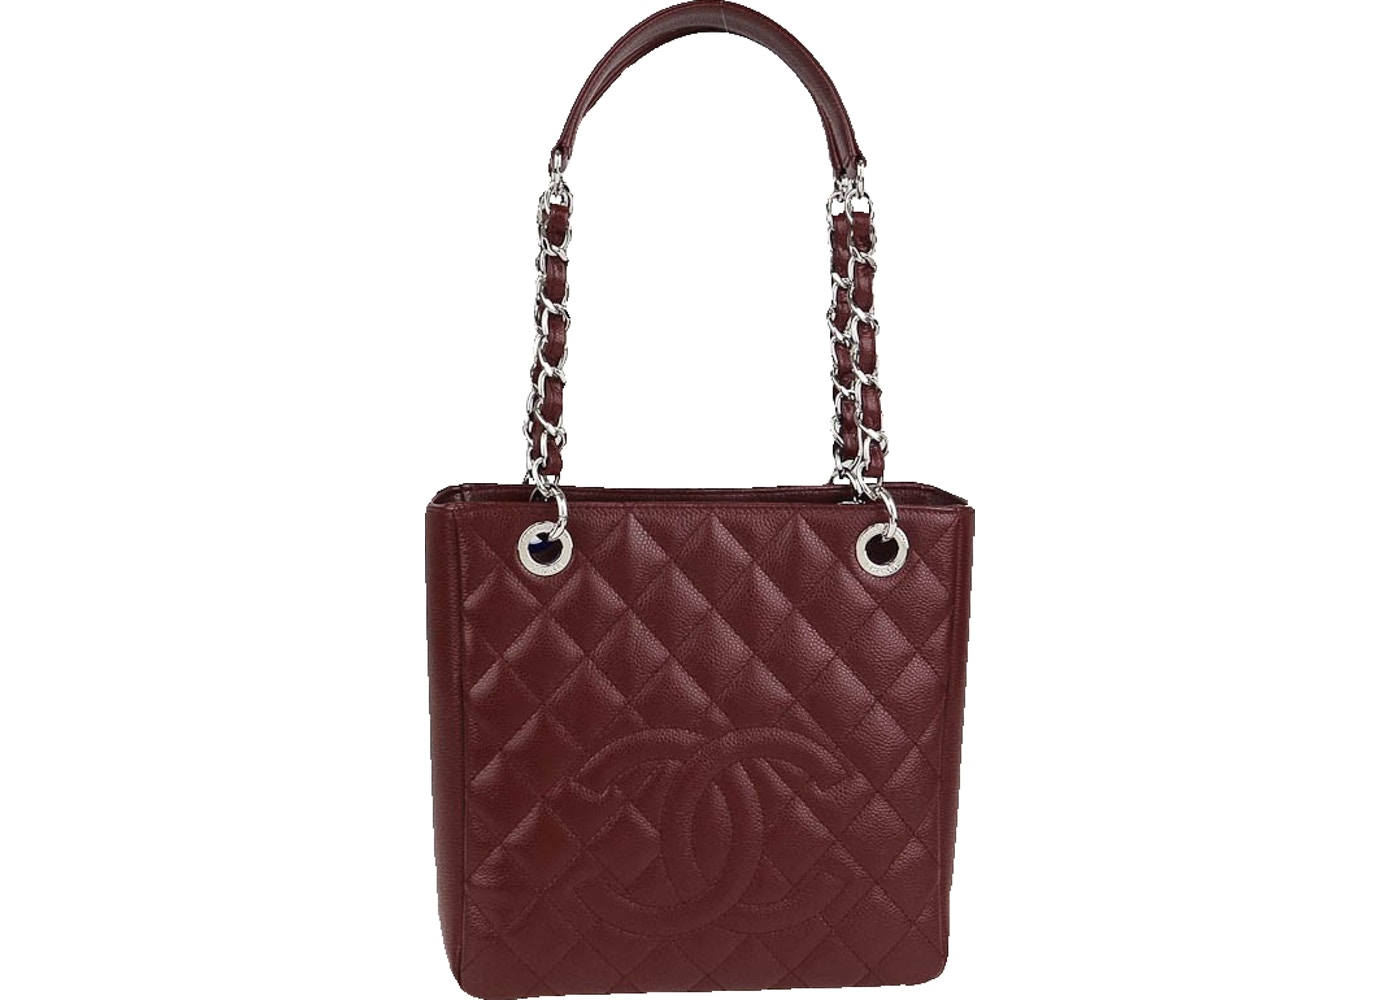 6d1a6184f7d7 Sell. or Ask. View All Bids. Chanel Petite Shopping Tote Quilted Bordeaux